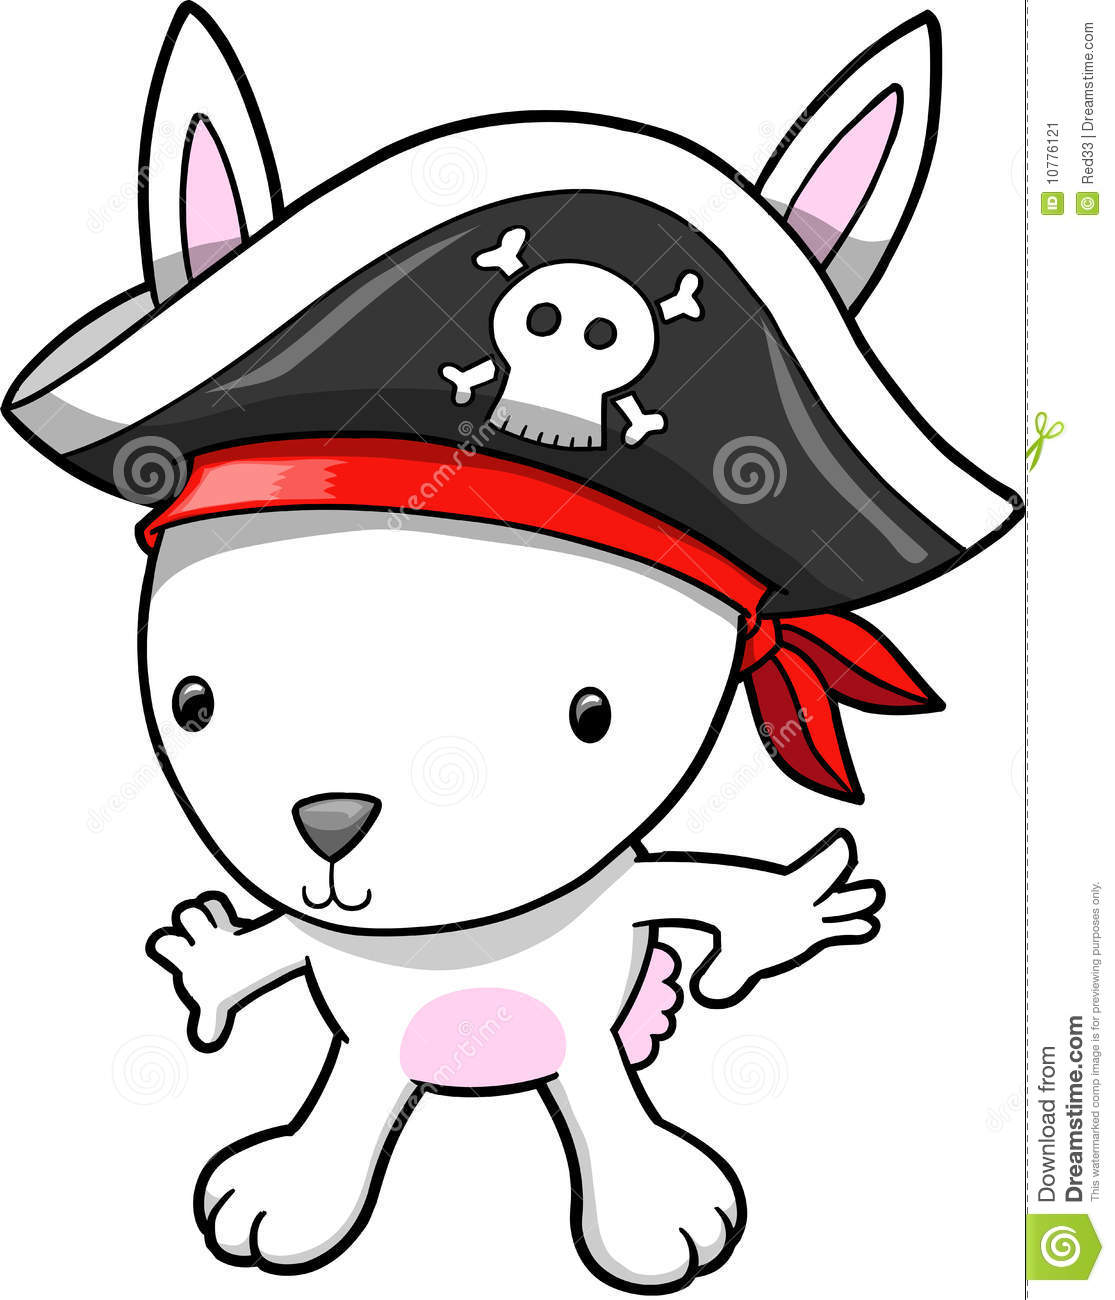 Pirate Bunny Vector Illustration Stock Image - Image: 10776121